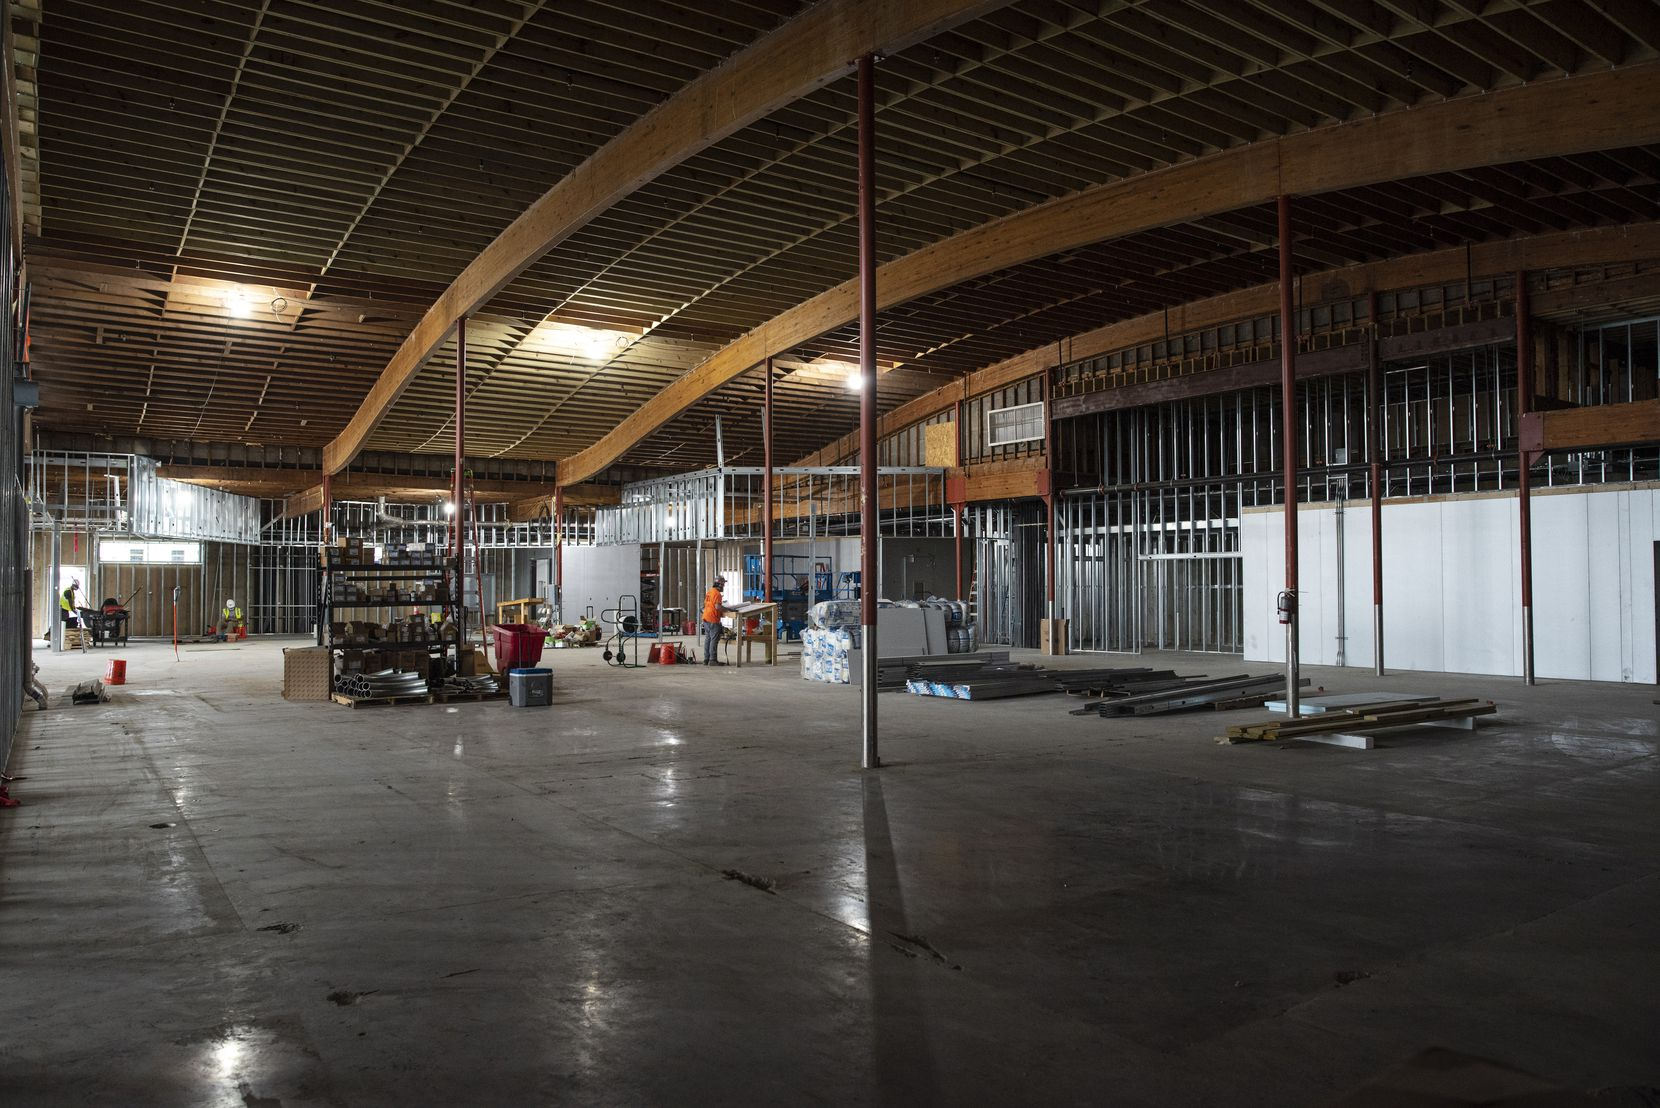 Construction is underway inside the Central Market at the Preston Oaks shopping center on Oct. 15. The grocery store, which was badly damaged during a tornado a year ago, is scheduled to open next year with upgrades including an expanded produce section and open floor plan.